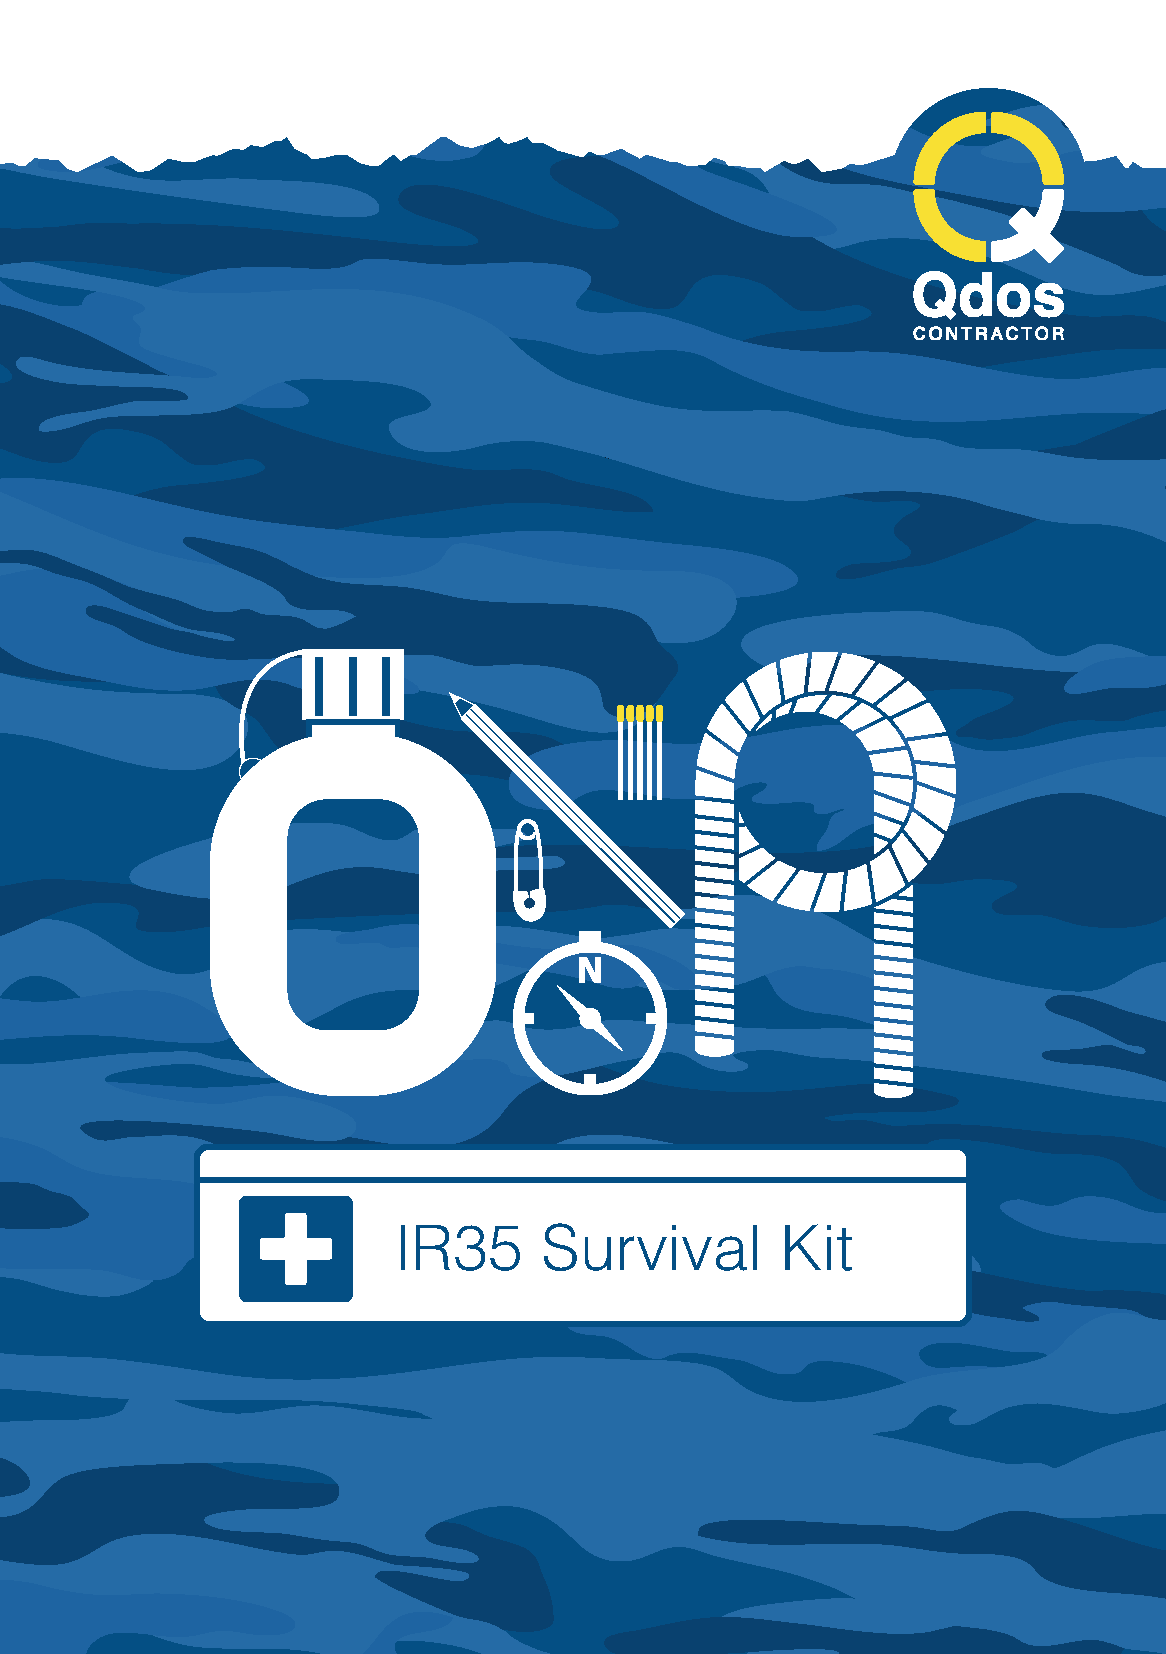 IR35 Survival Kit